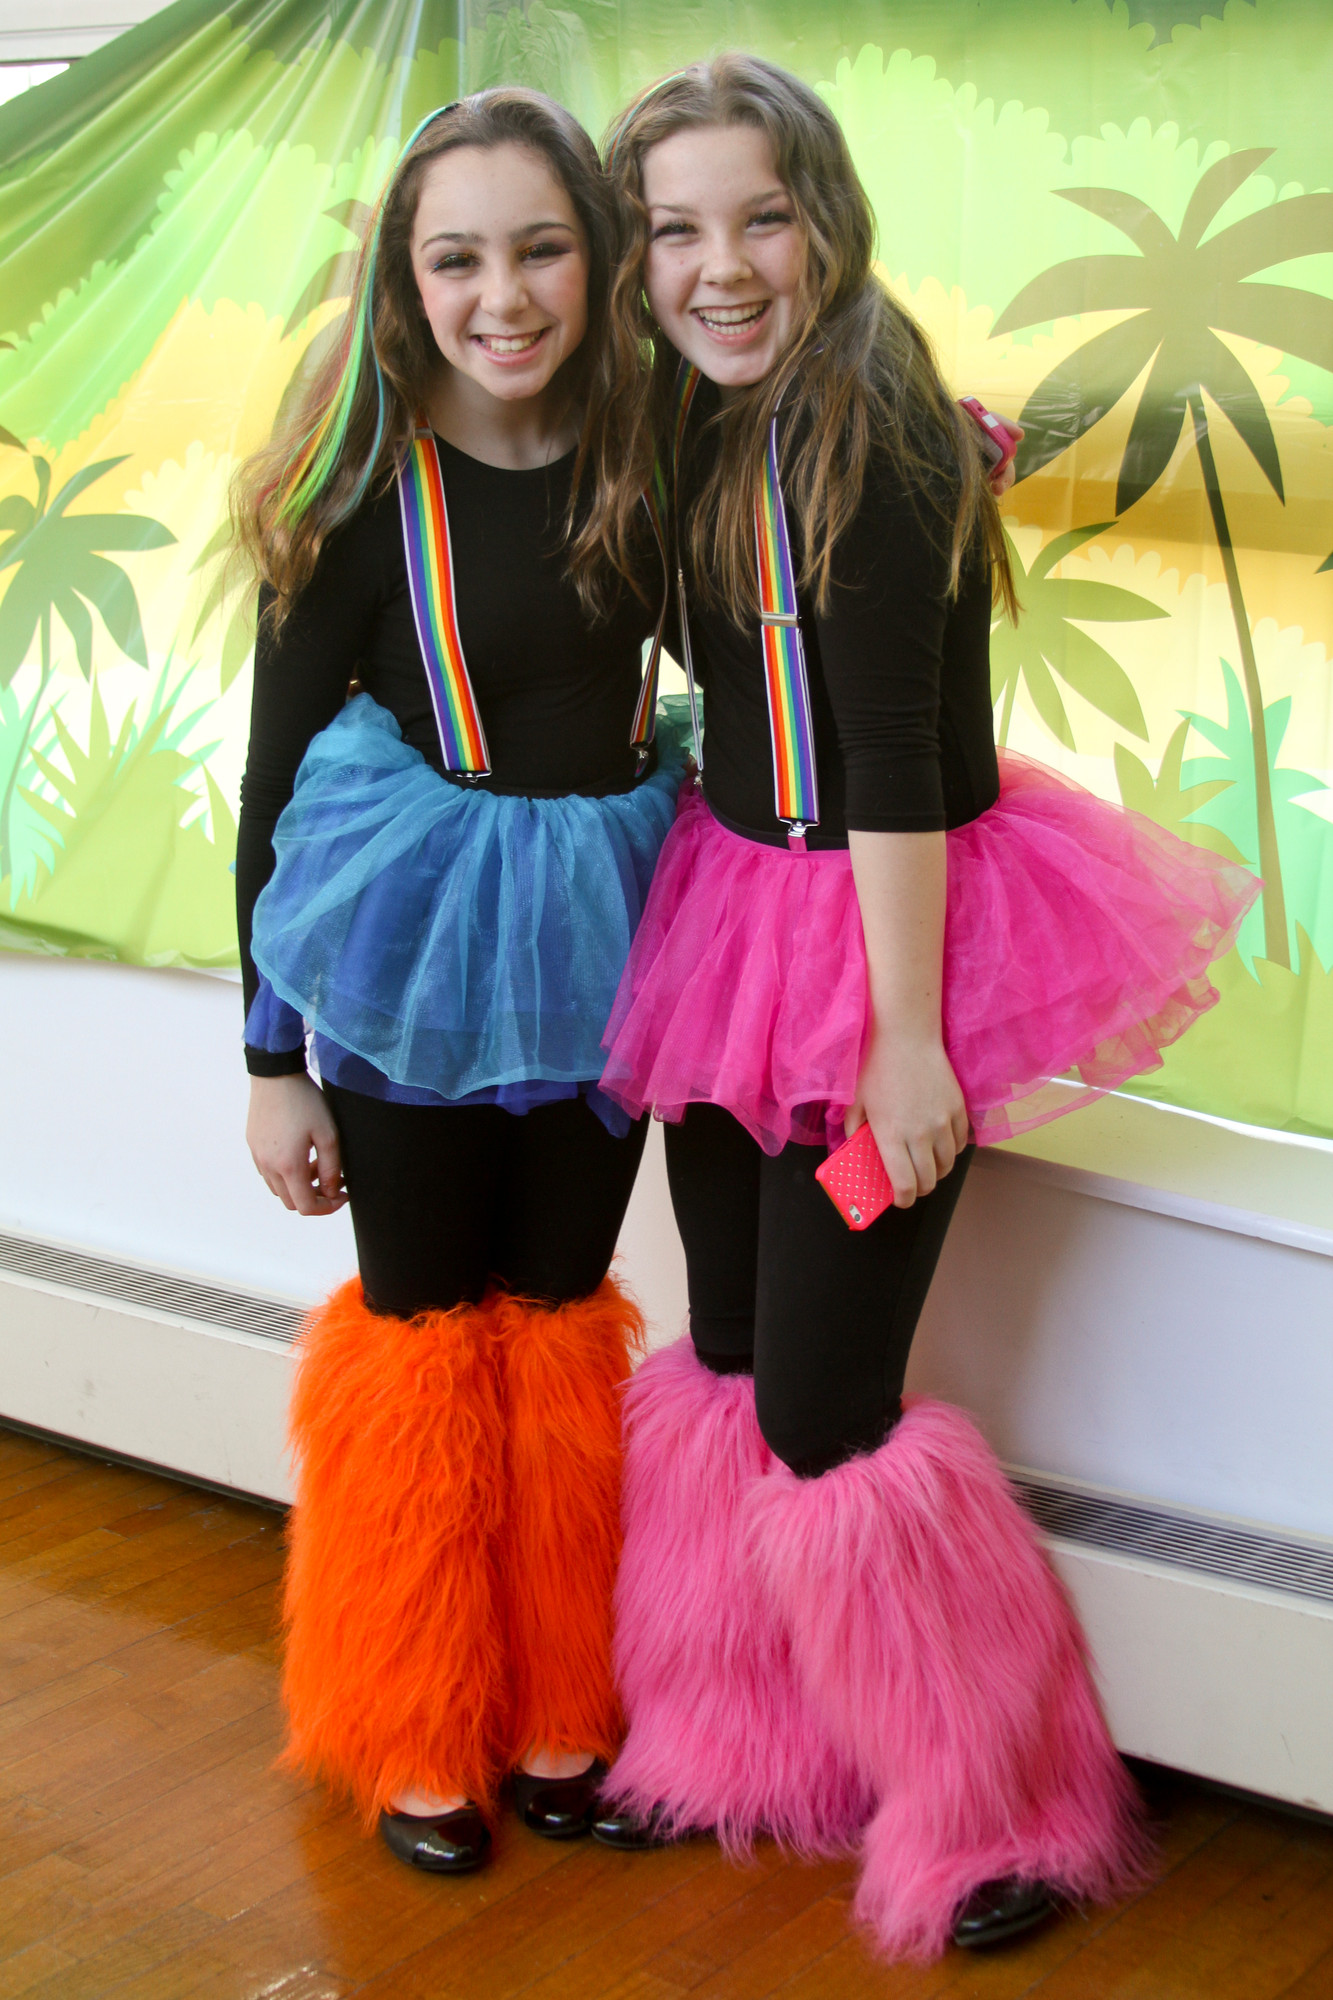 Purim in the Jungle was the theme of Chabad of Hewlett's Purim celebration. Ally Heyman, left, and Lauren Grauer, both 11, were ready for a colorful safari.